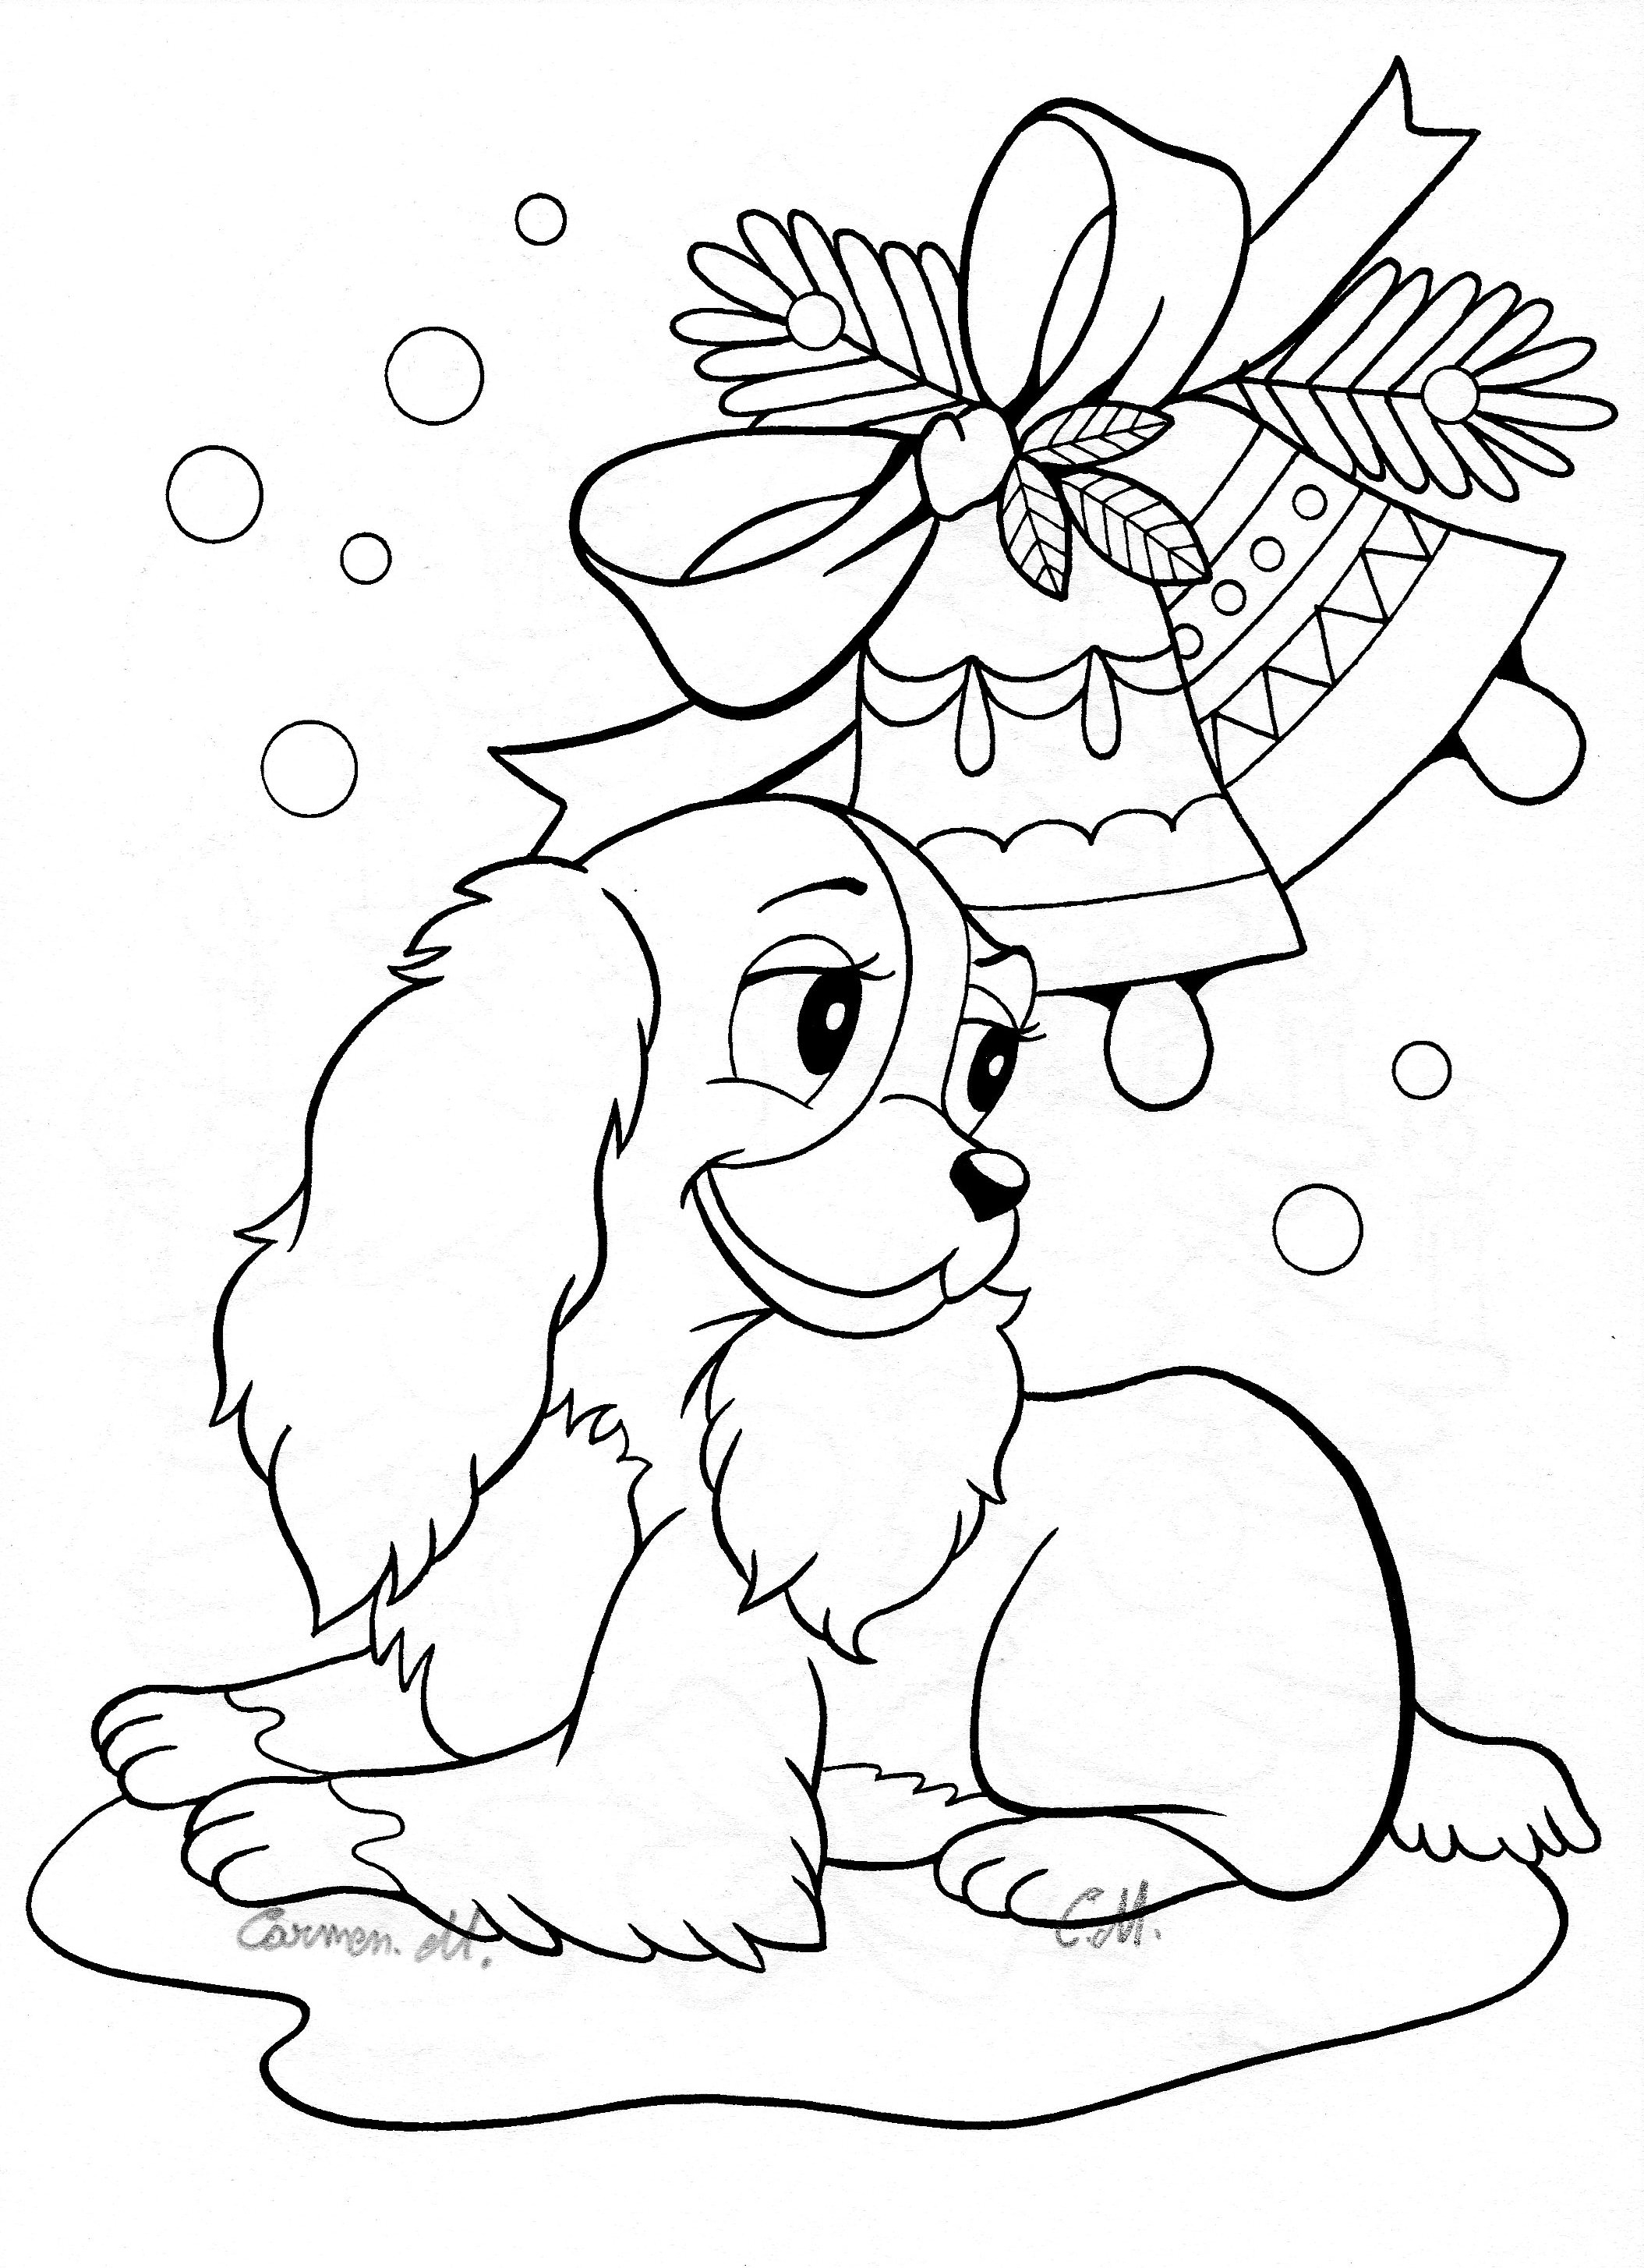 Cute Snowman Coloring Pages At Getcolorings